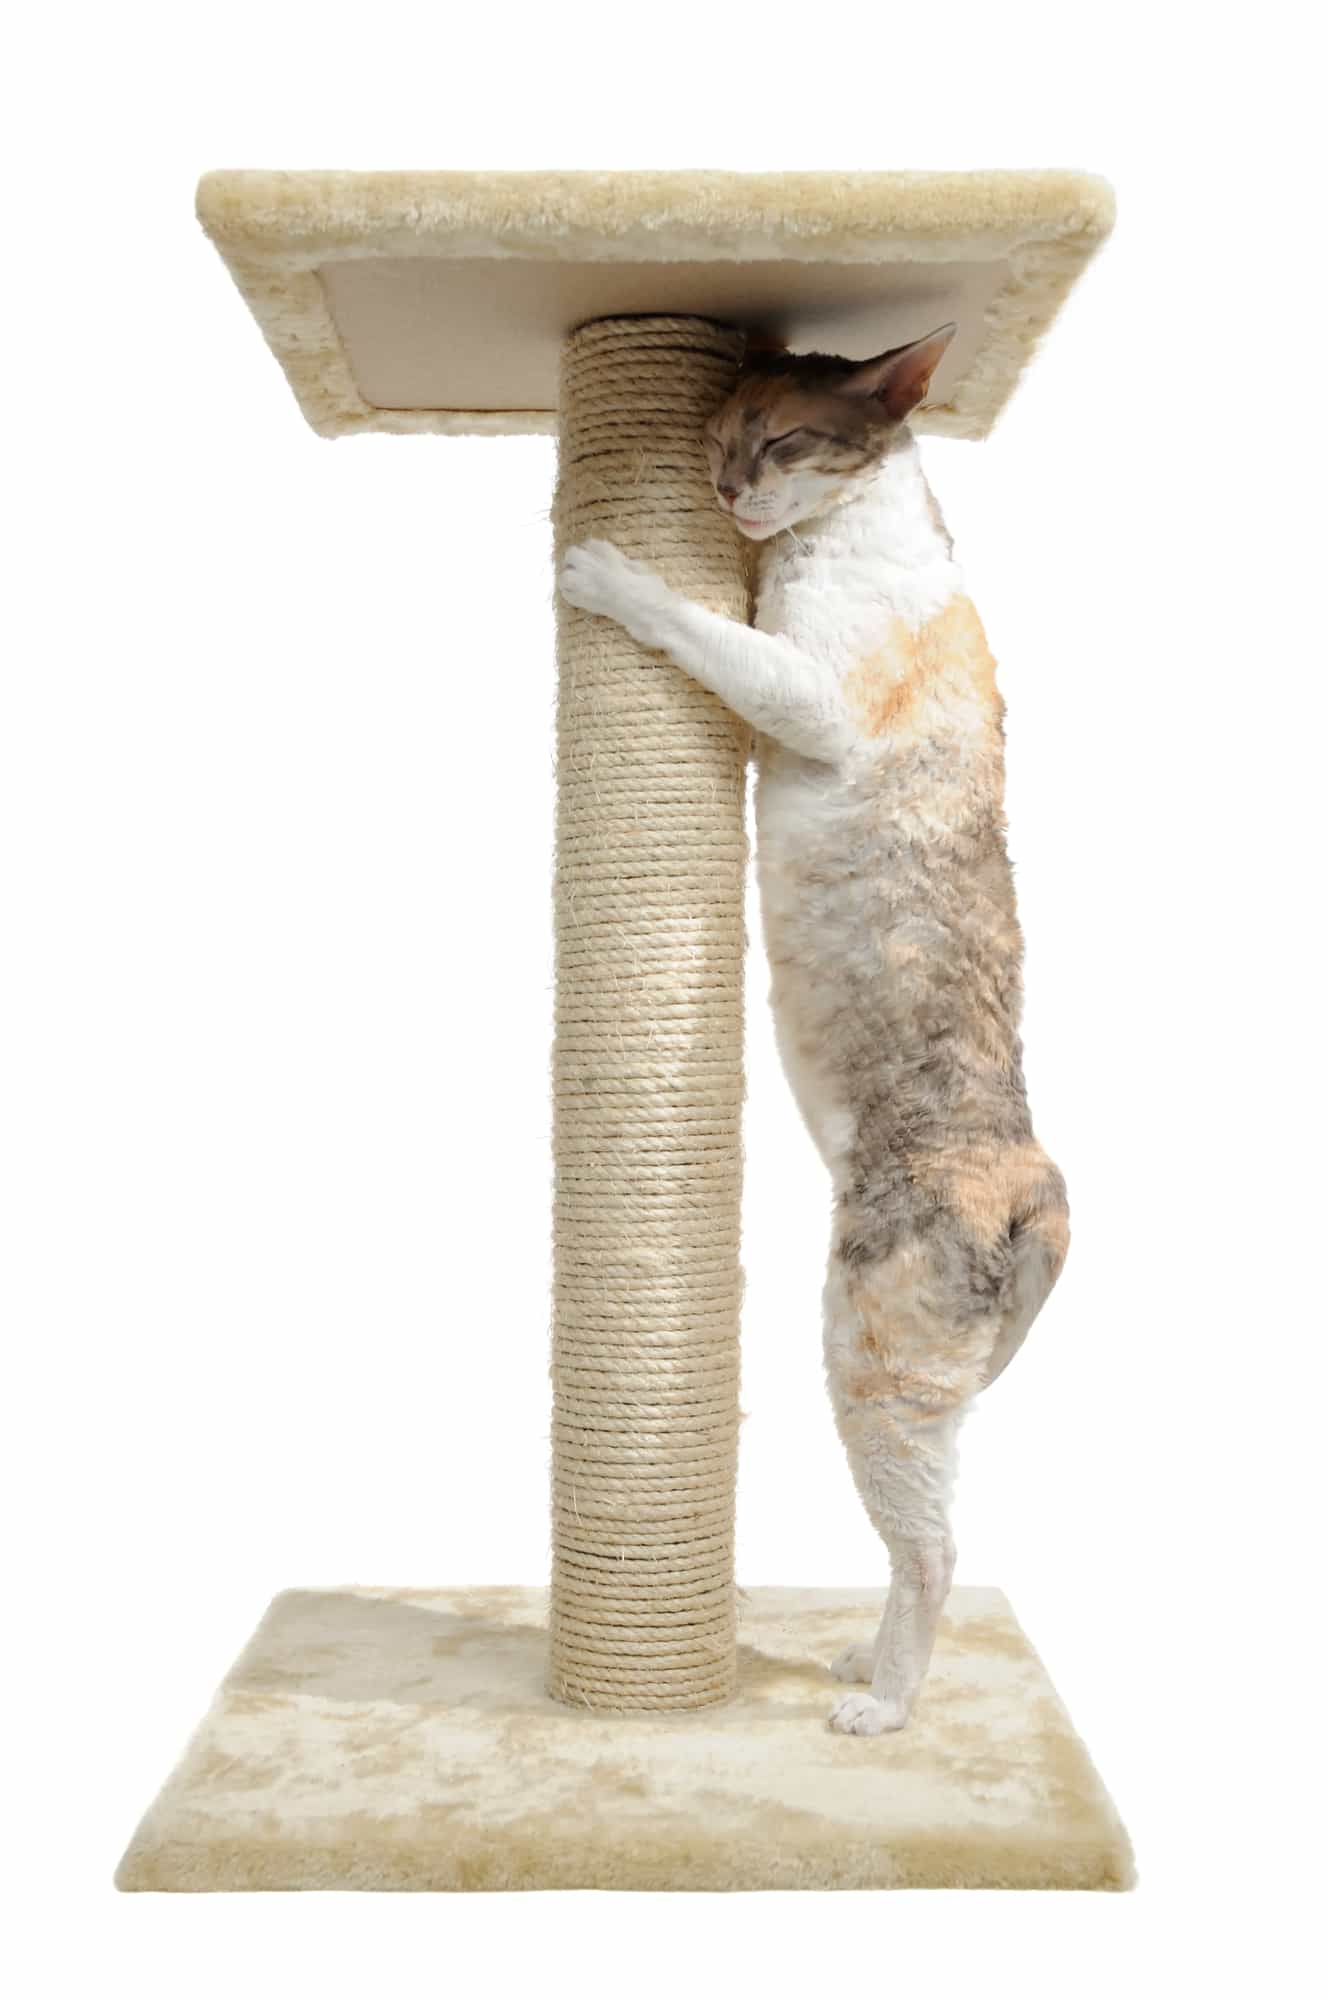 cat scratching post reviews will tell you the importance of having a scratch post at home since you canu0027t expect your cat to stop scratching - Cat Scratching Post